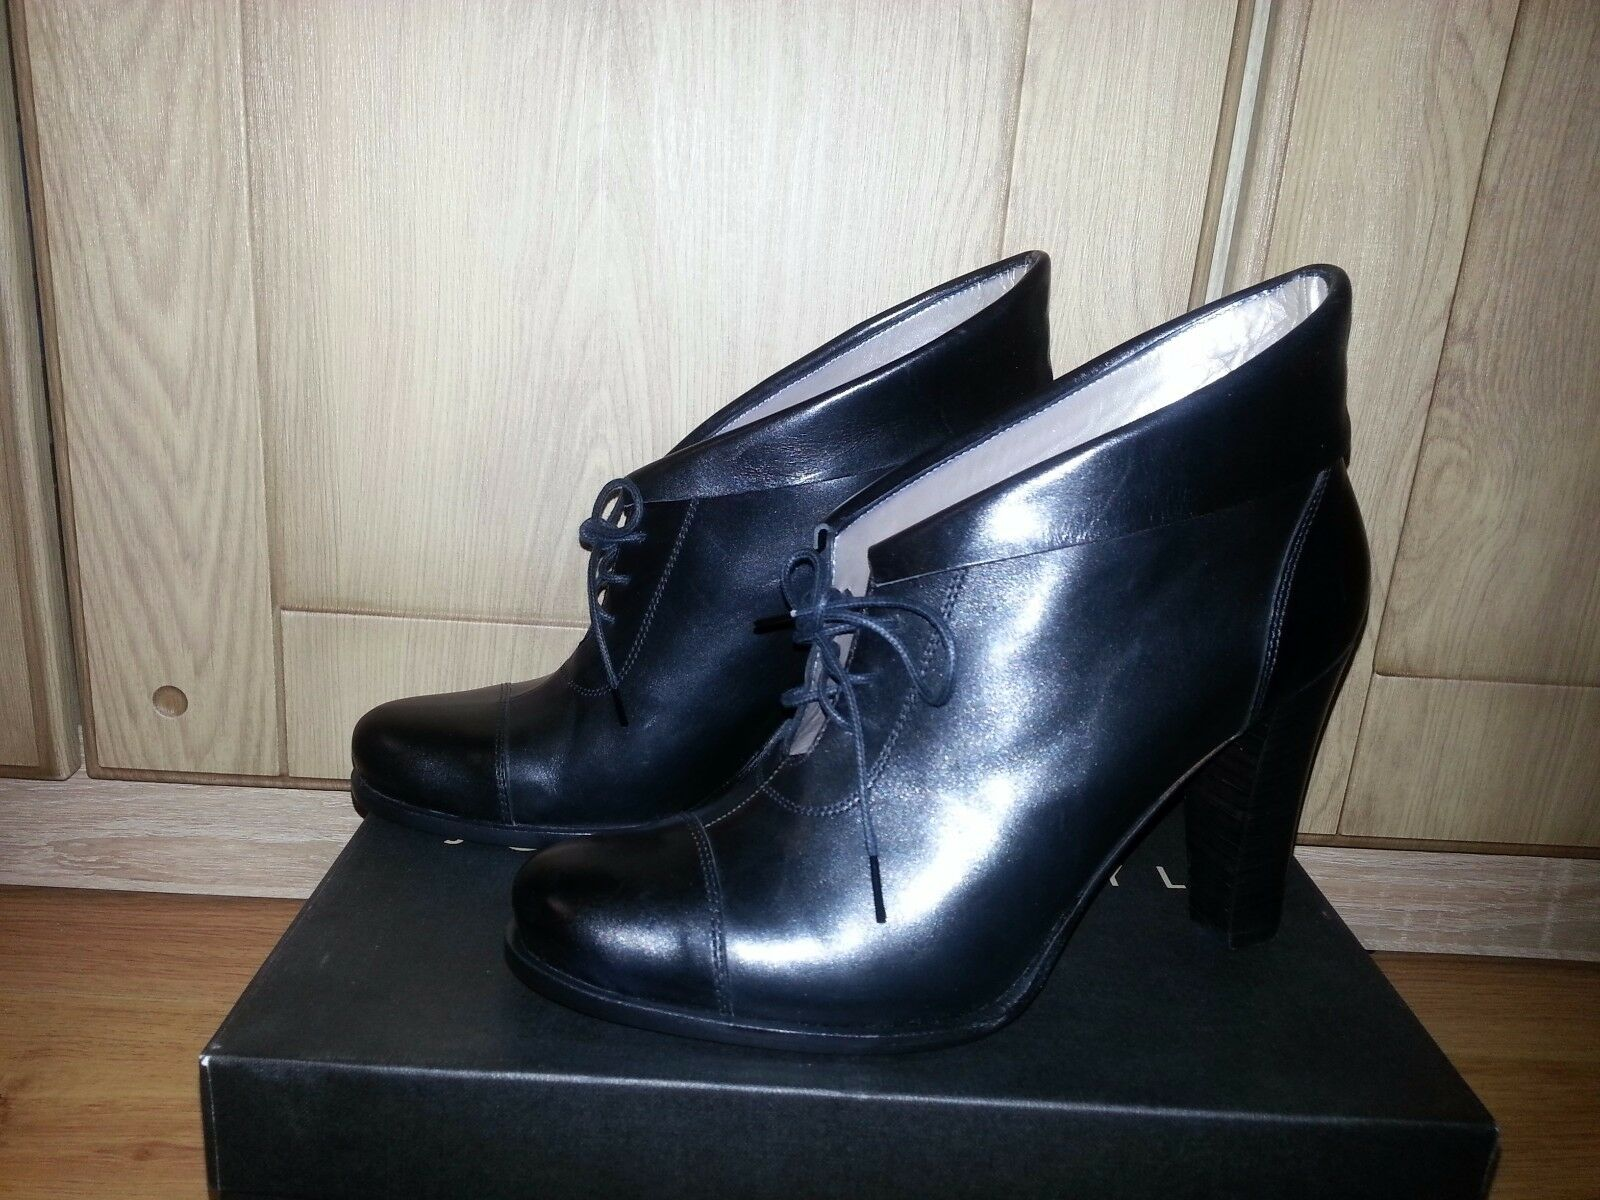 Authentic Jouer Le Style Massimo Paolo Pollini Dessigners Ankle Boot